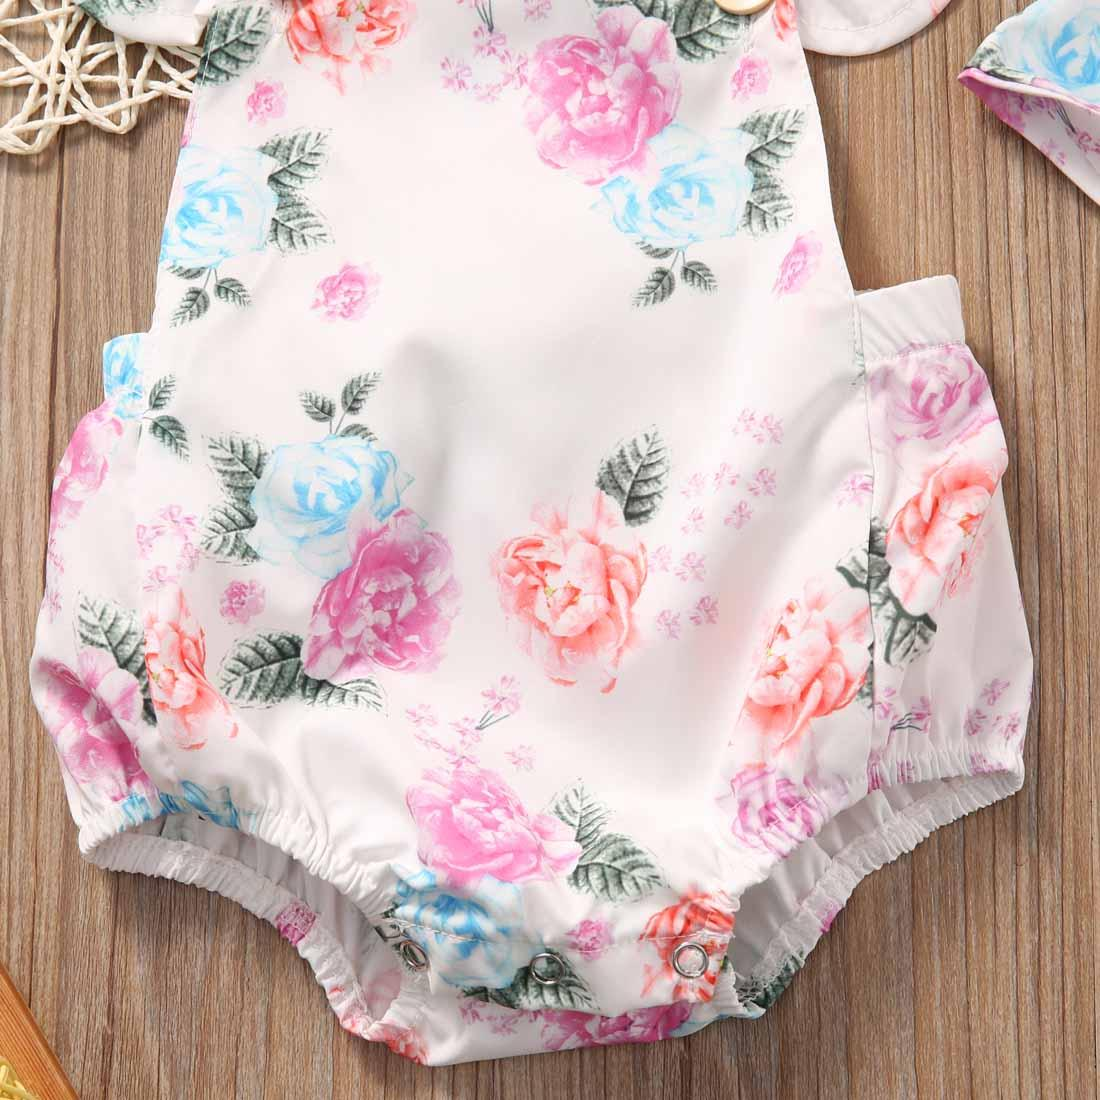 abd4bff896ff Wholesale- Floral Baby Romper Clothes Set 2017 Summer Newborn Baby Girl  Ruffled Sleeve Bodysuit Jumpsuit + Headband 2pcs Outfit Sunsuit